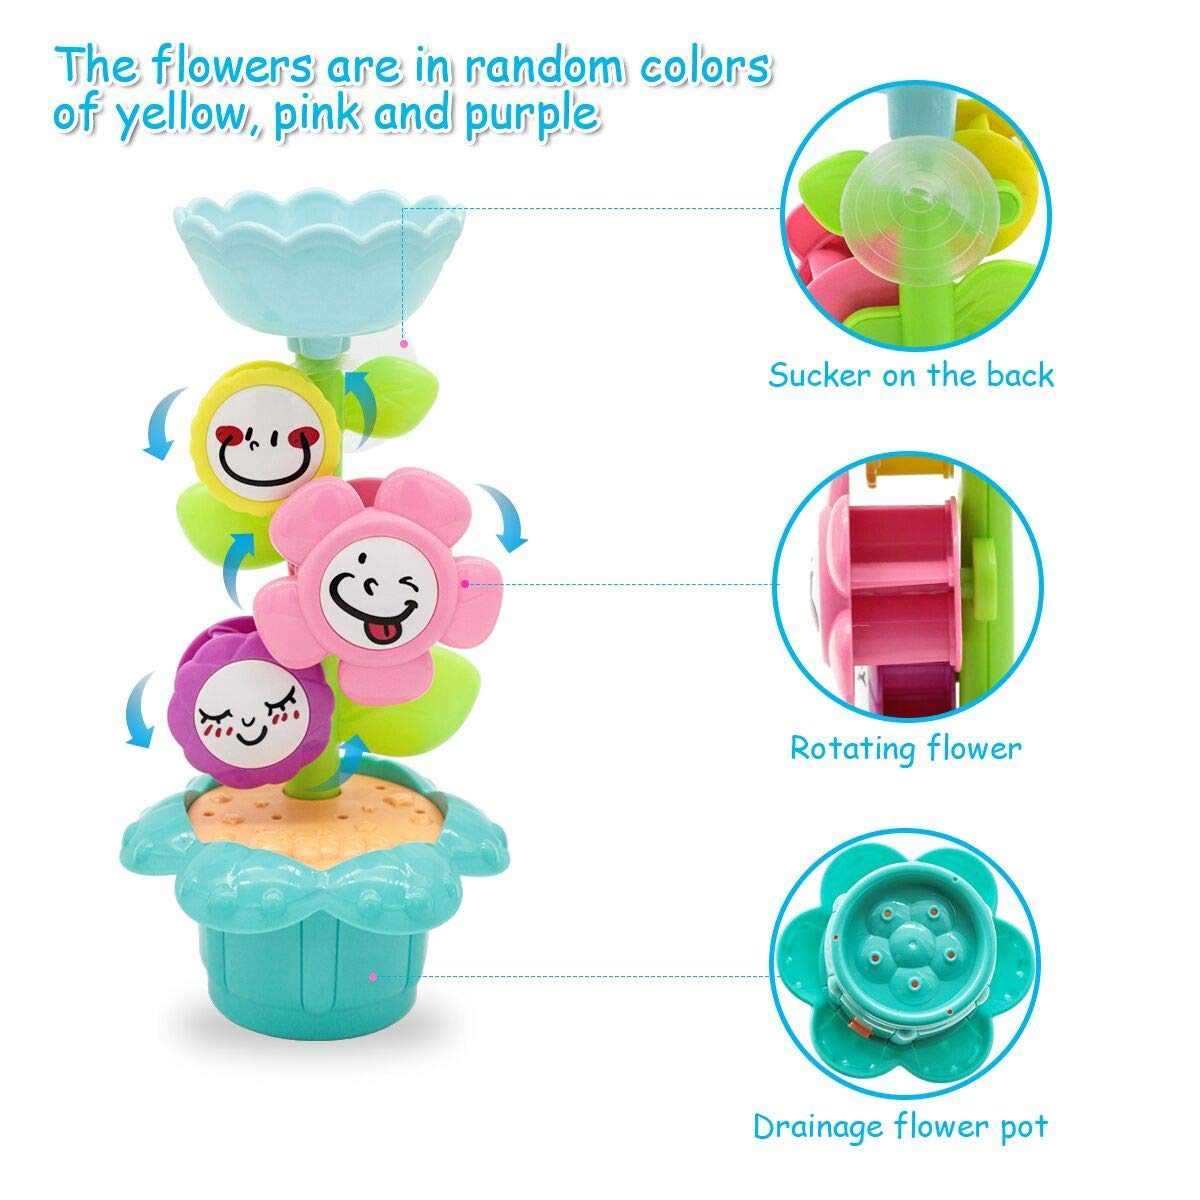 6 PCs Bathtub Bathtime Toys for Baby Toddlers 1 2 3 Year Old Lydaz Bath Toys Set Stacking Cups and Watering Can Plus Bath Toy Organizer Kids Flower Waterfall Water Station